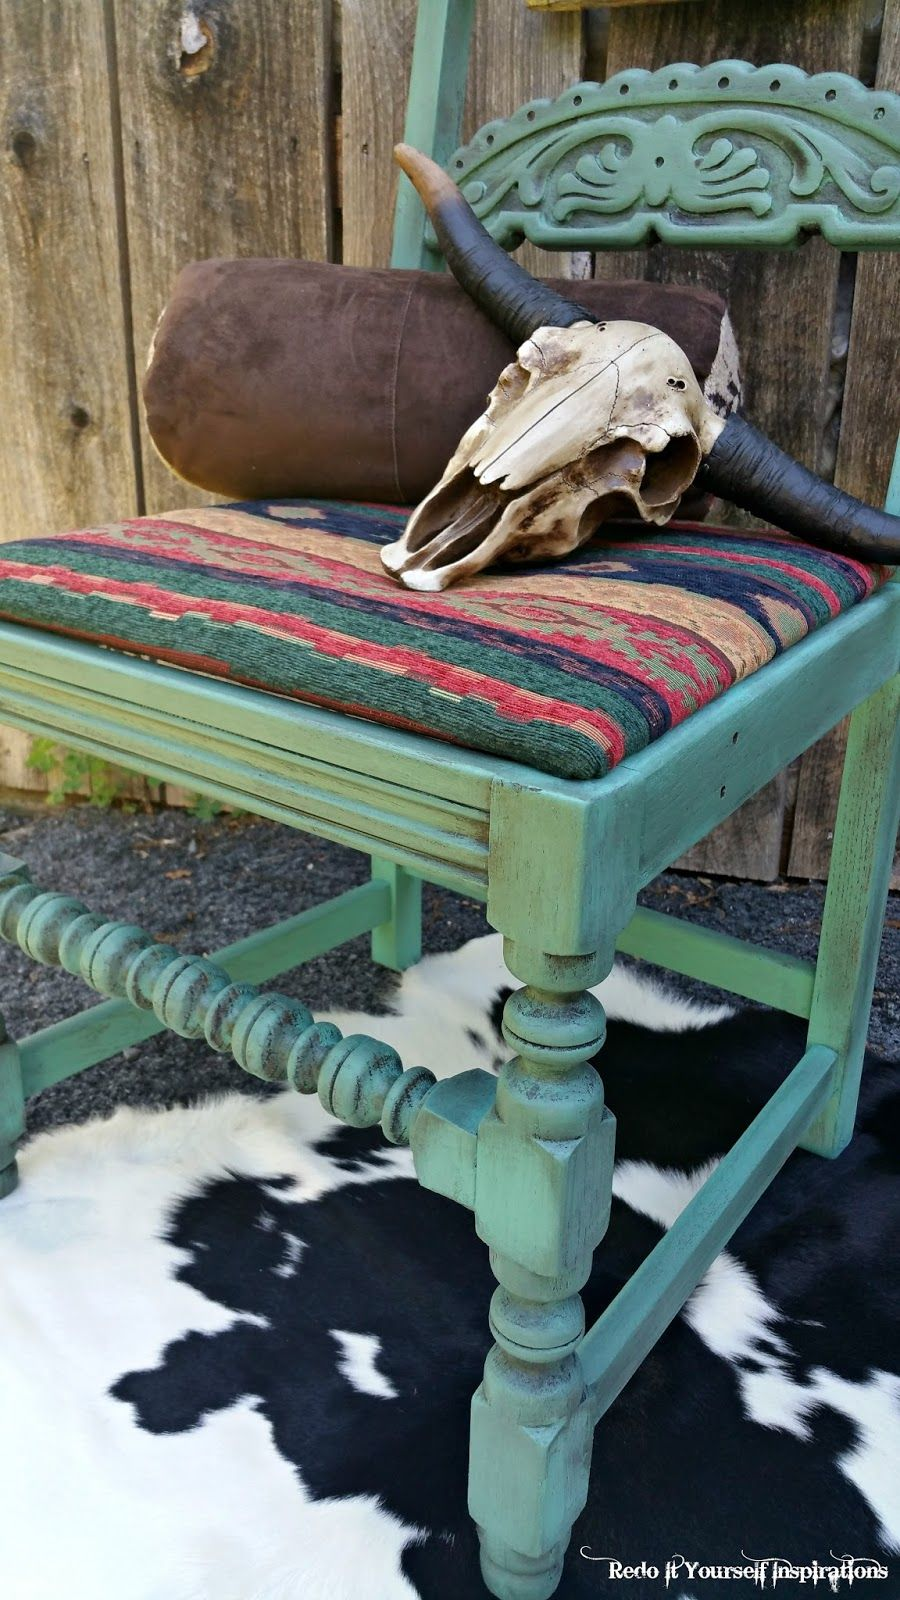 Fabulous Redo It Yourself Inspirations Southwestern Chair Redo Alphanode Cool Chair Designs And Ideas Alphanodeonline